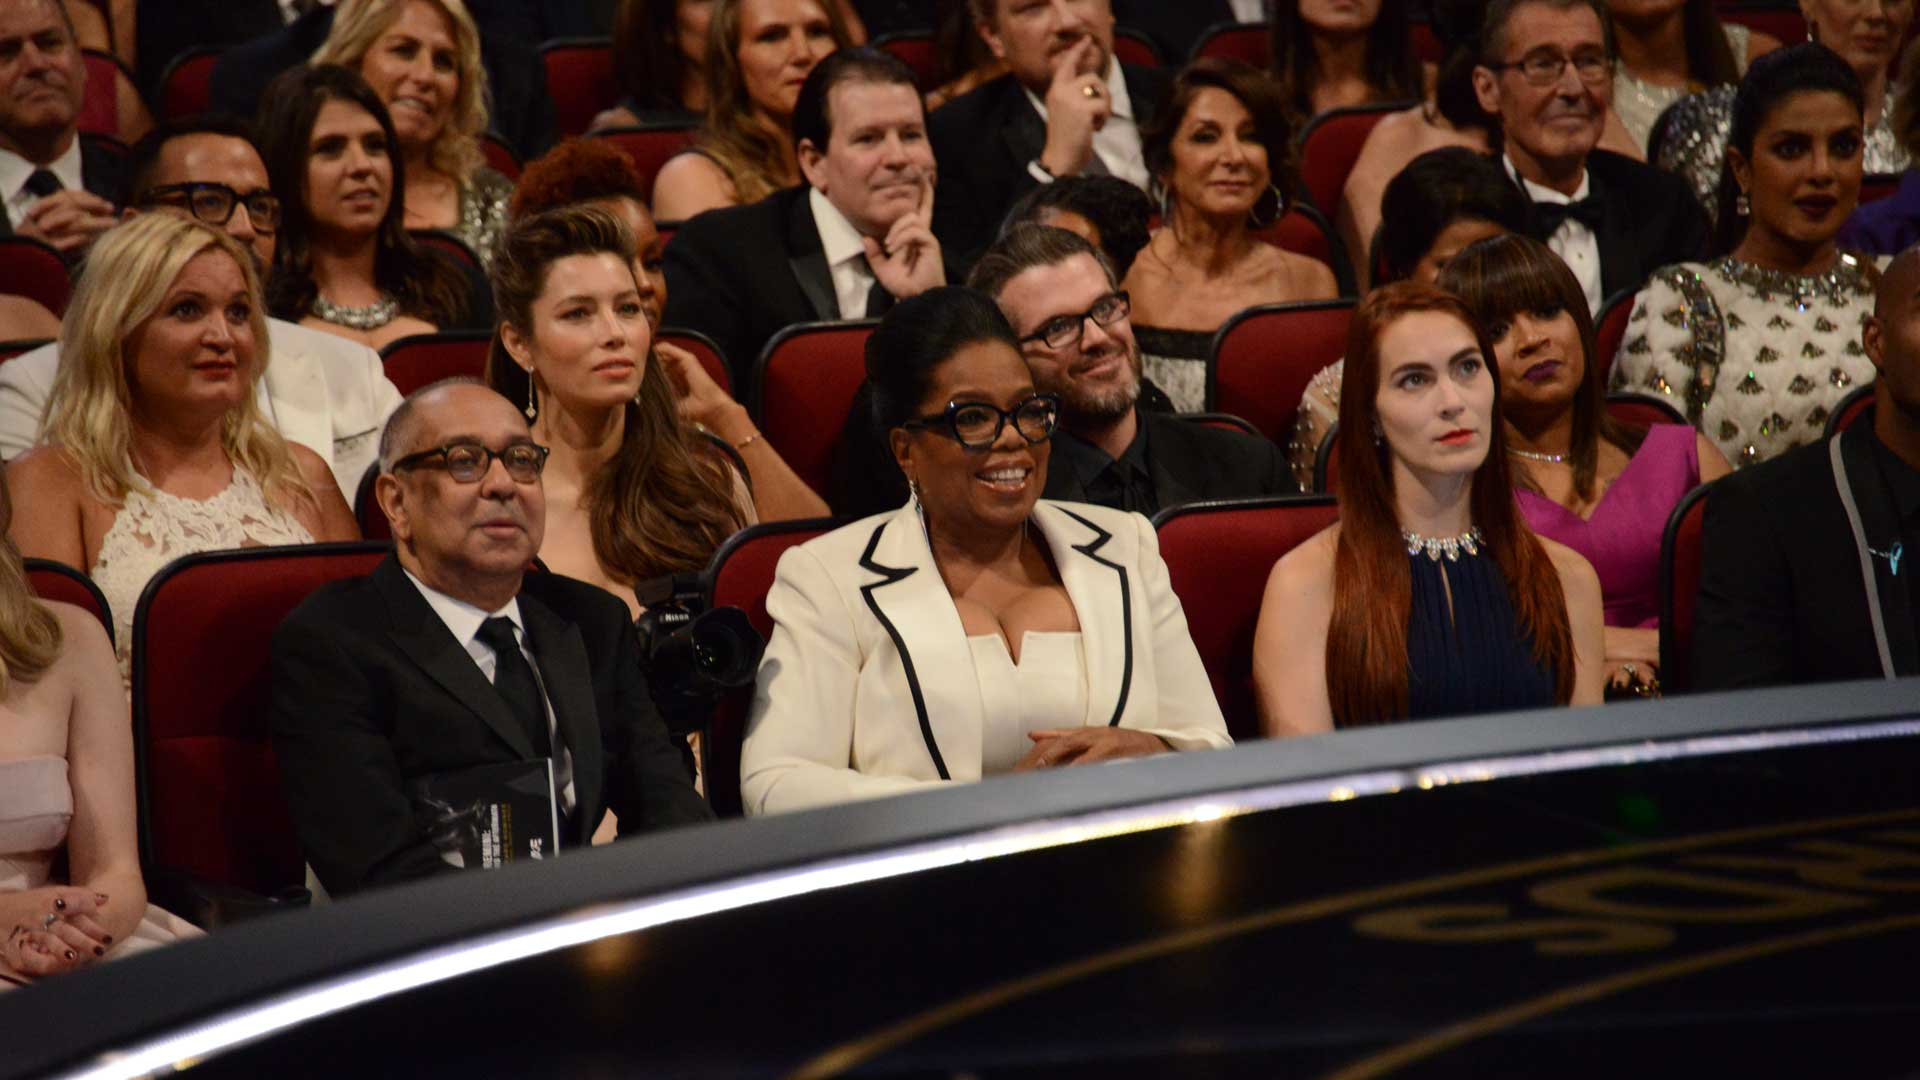 Oprah is front-and-center at the Emmys, while Jessica Biel and Priyanka Chopra watch the action from the second row.